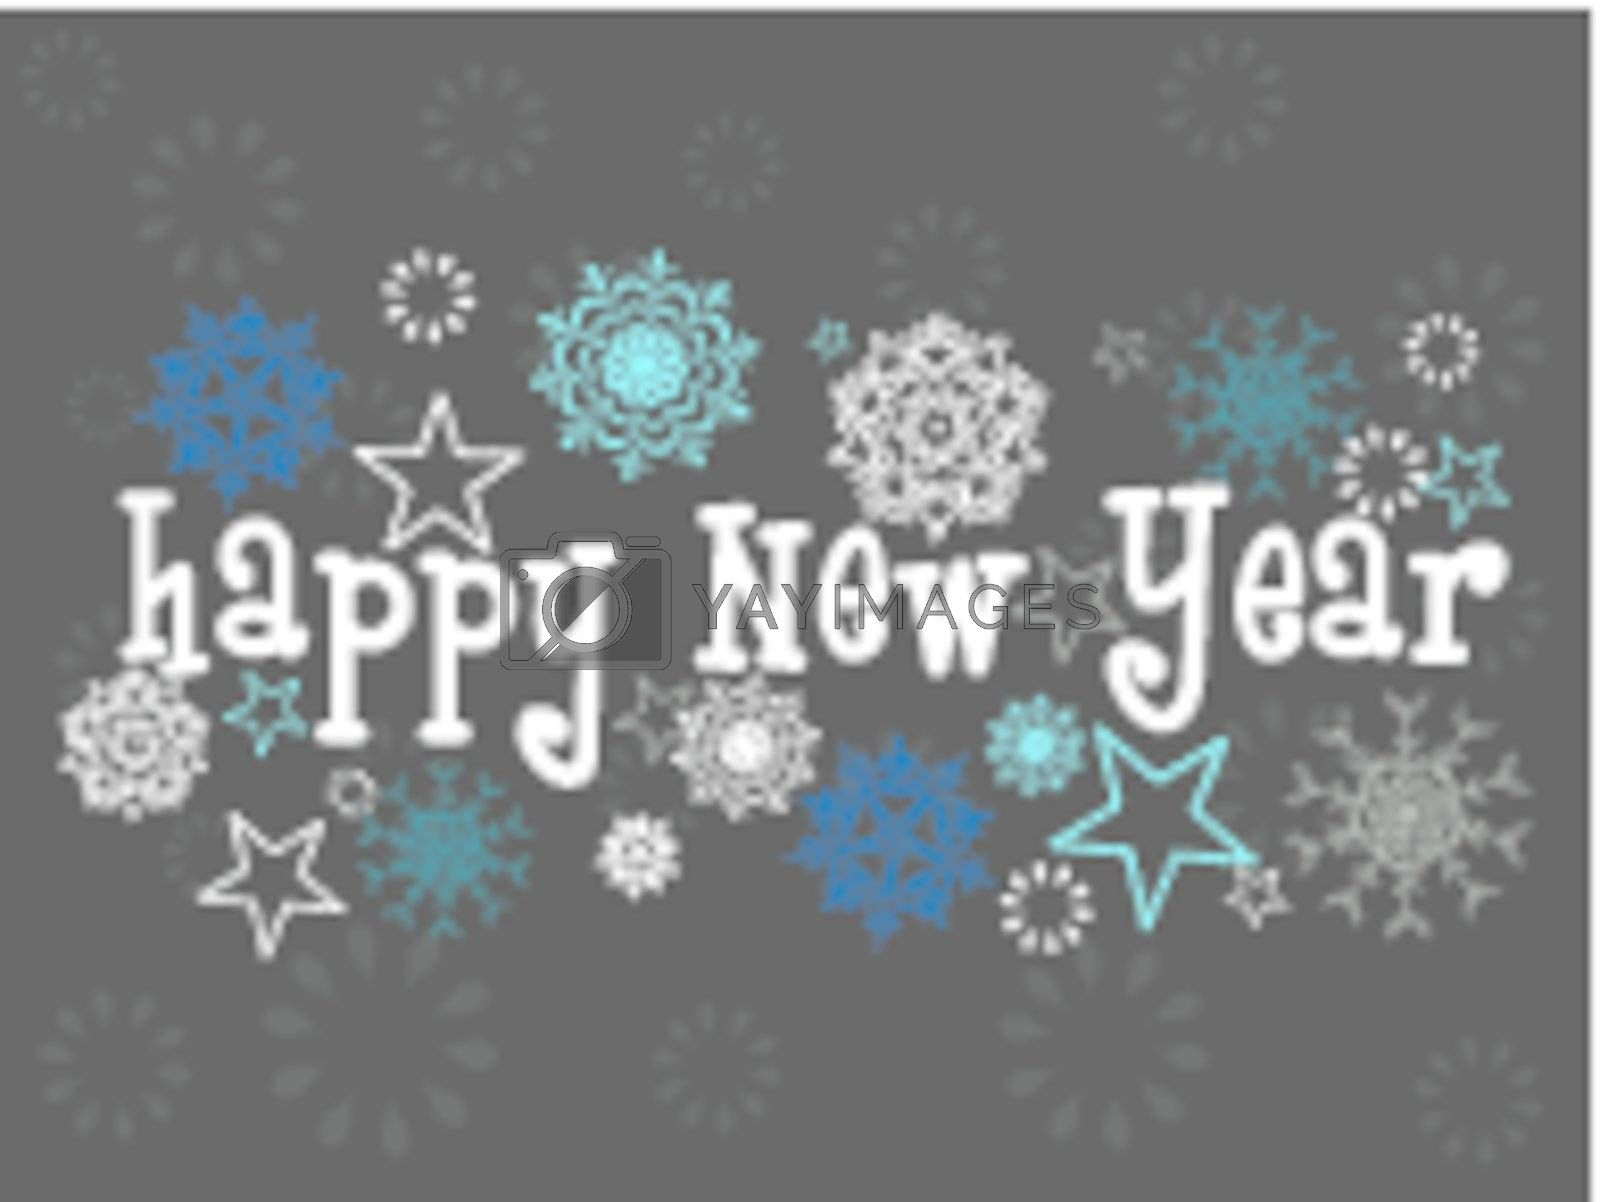 abstract elegant snowflakes concept background for happy new year